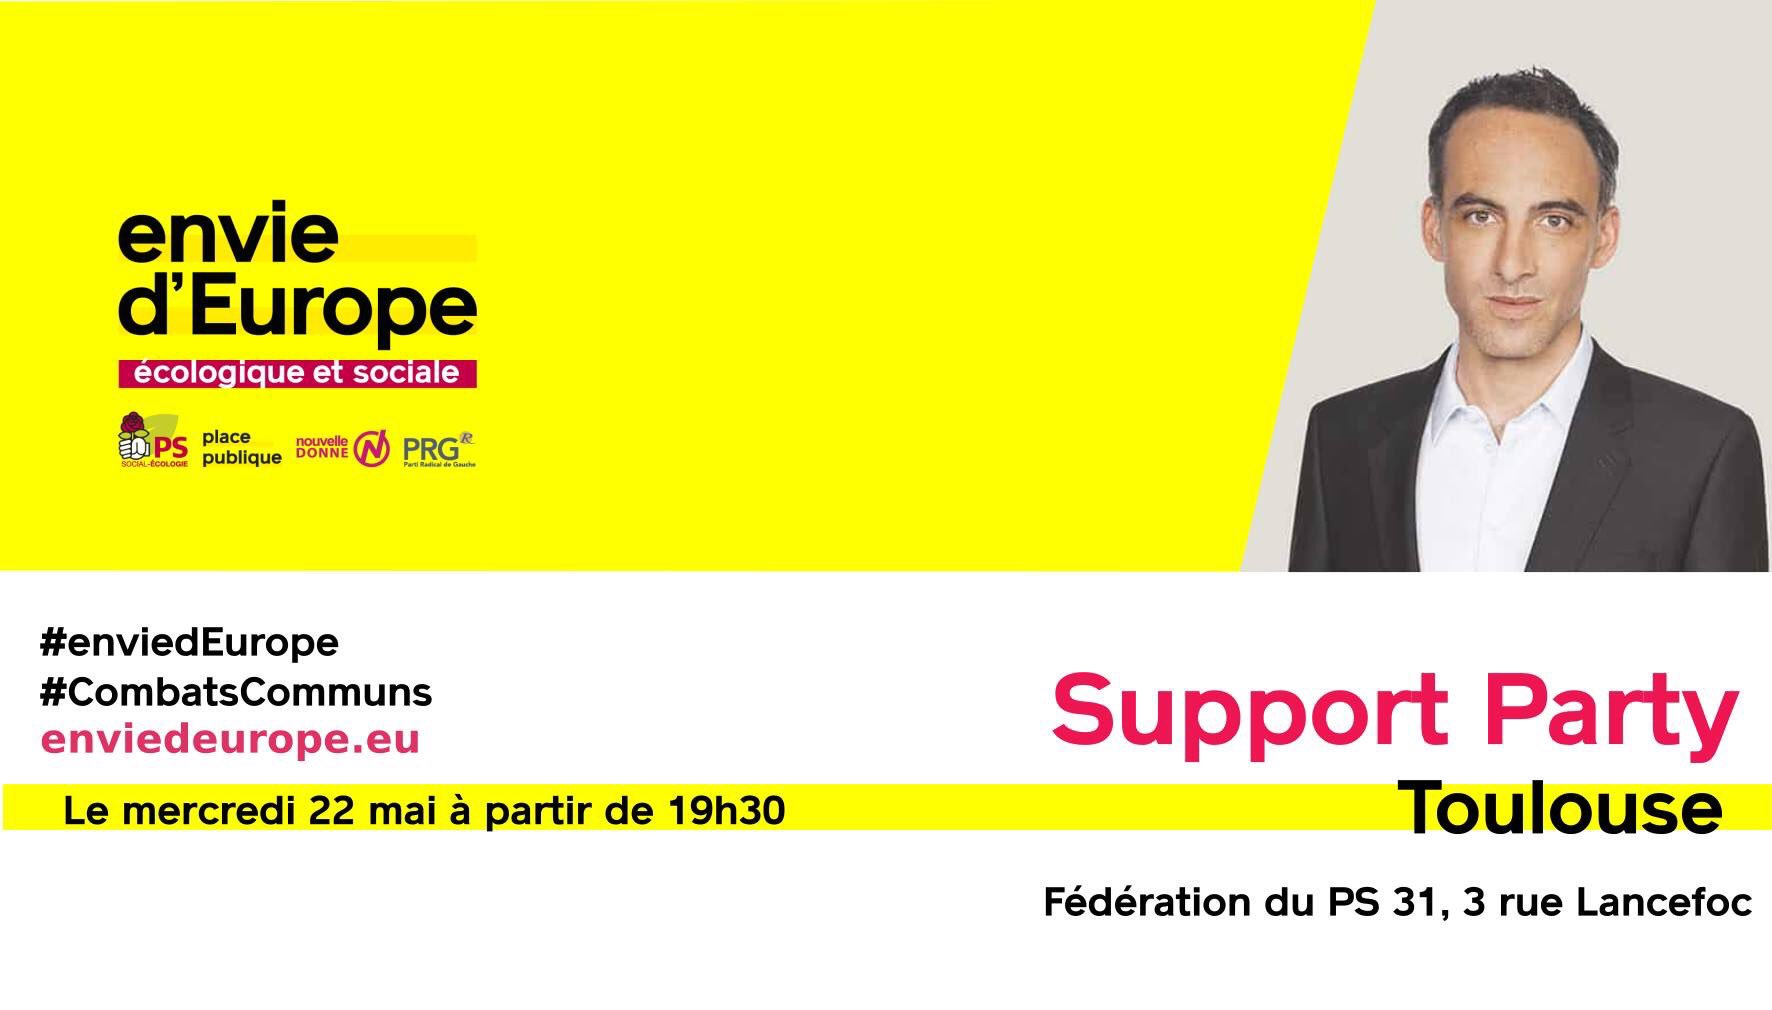 Support Party du 22 mai 2019